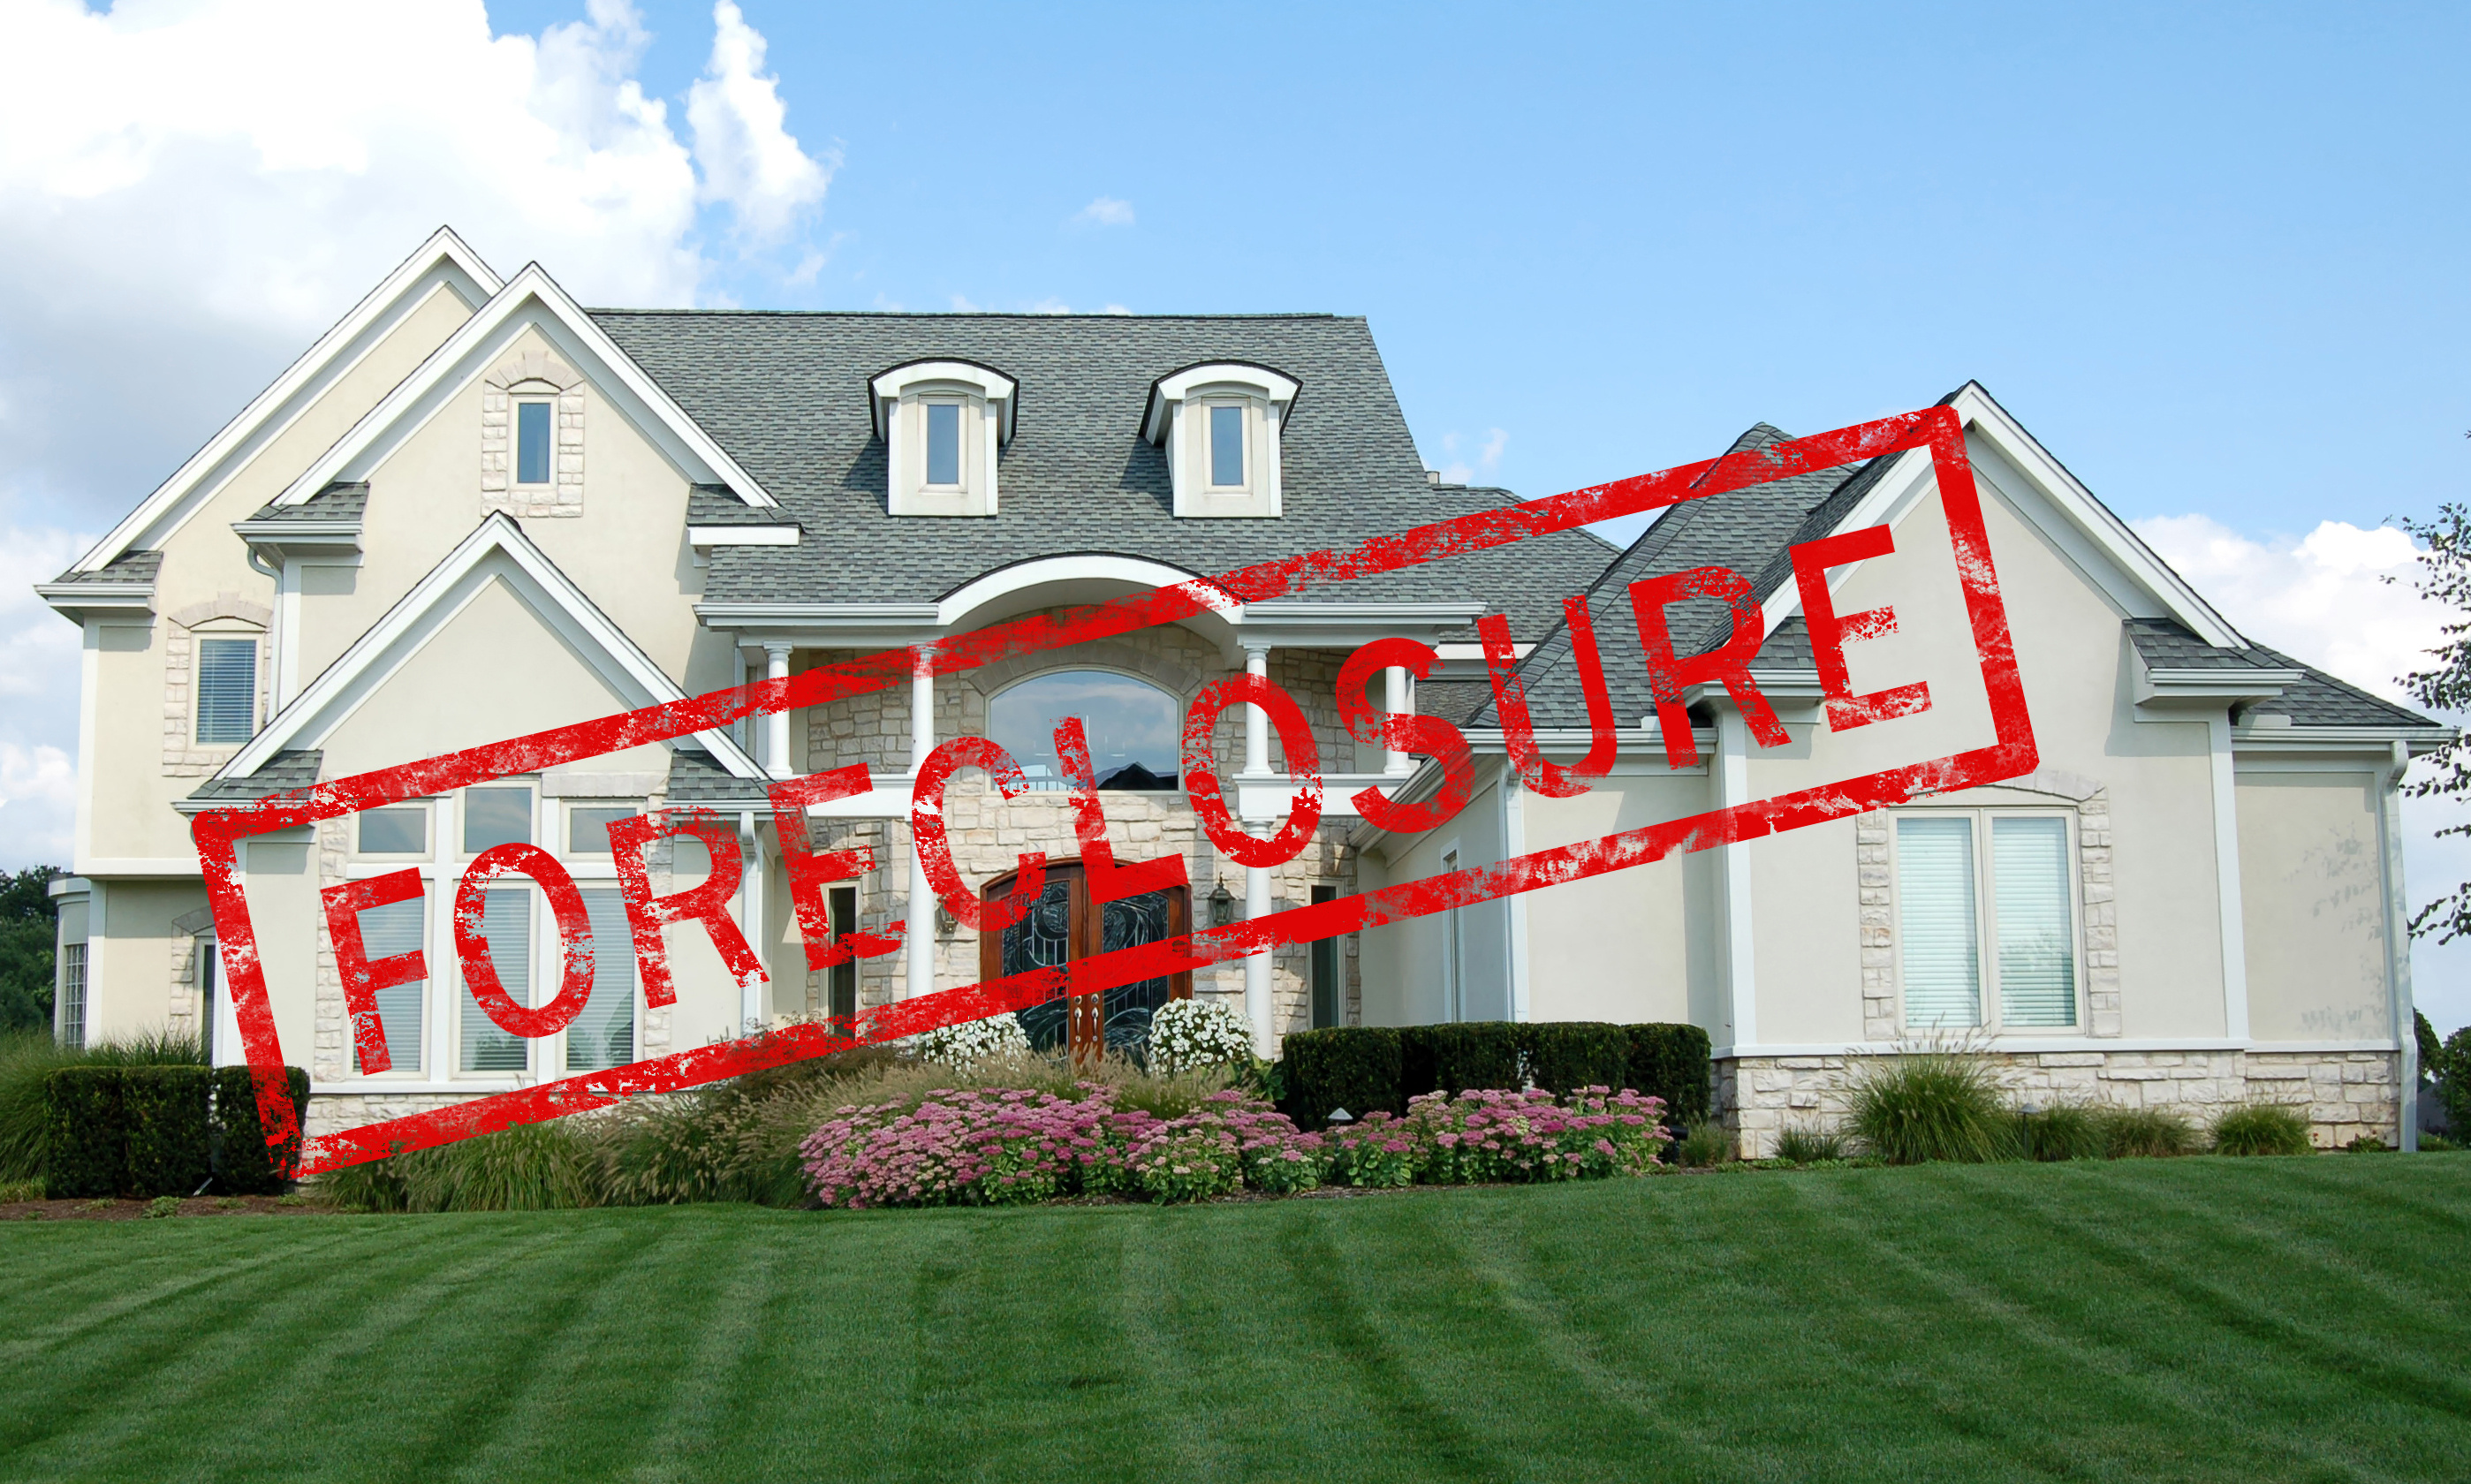 Call TK Valuations, Inc. to order appraisals of Erie foreclosures